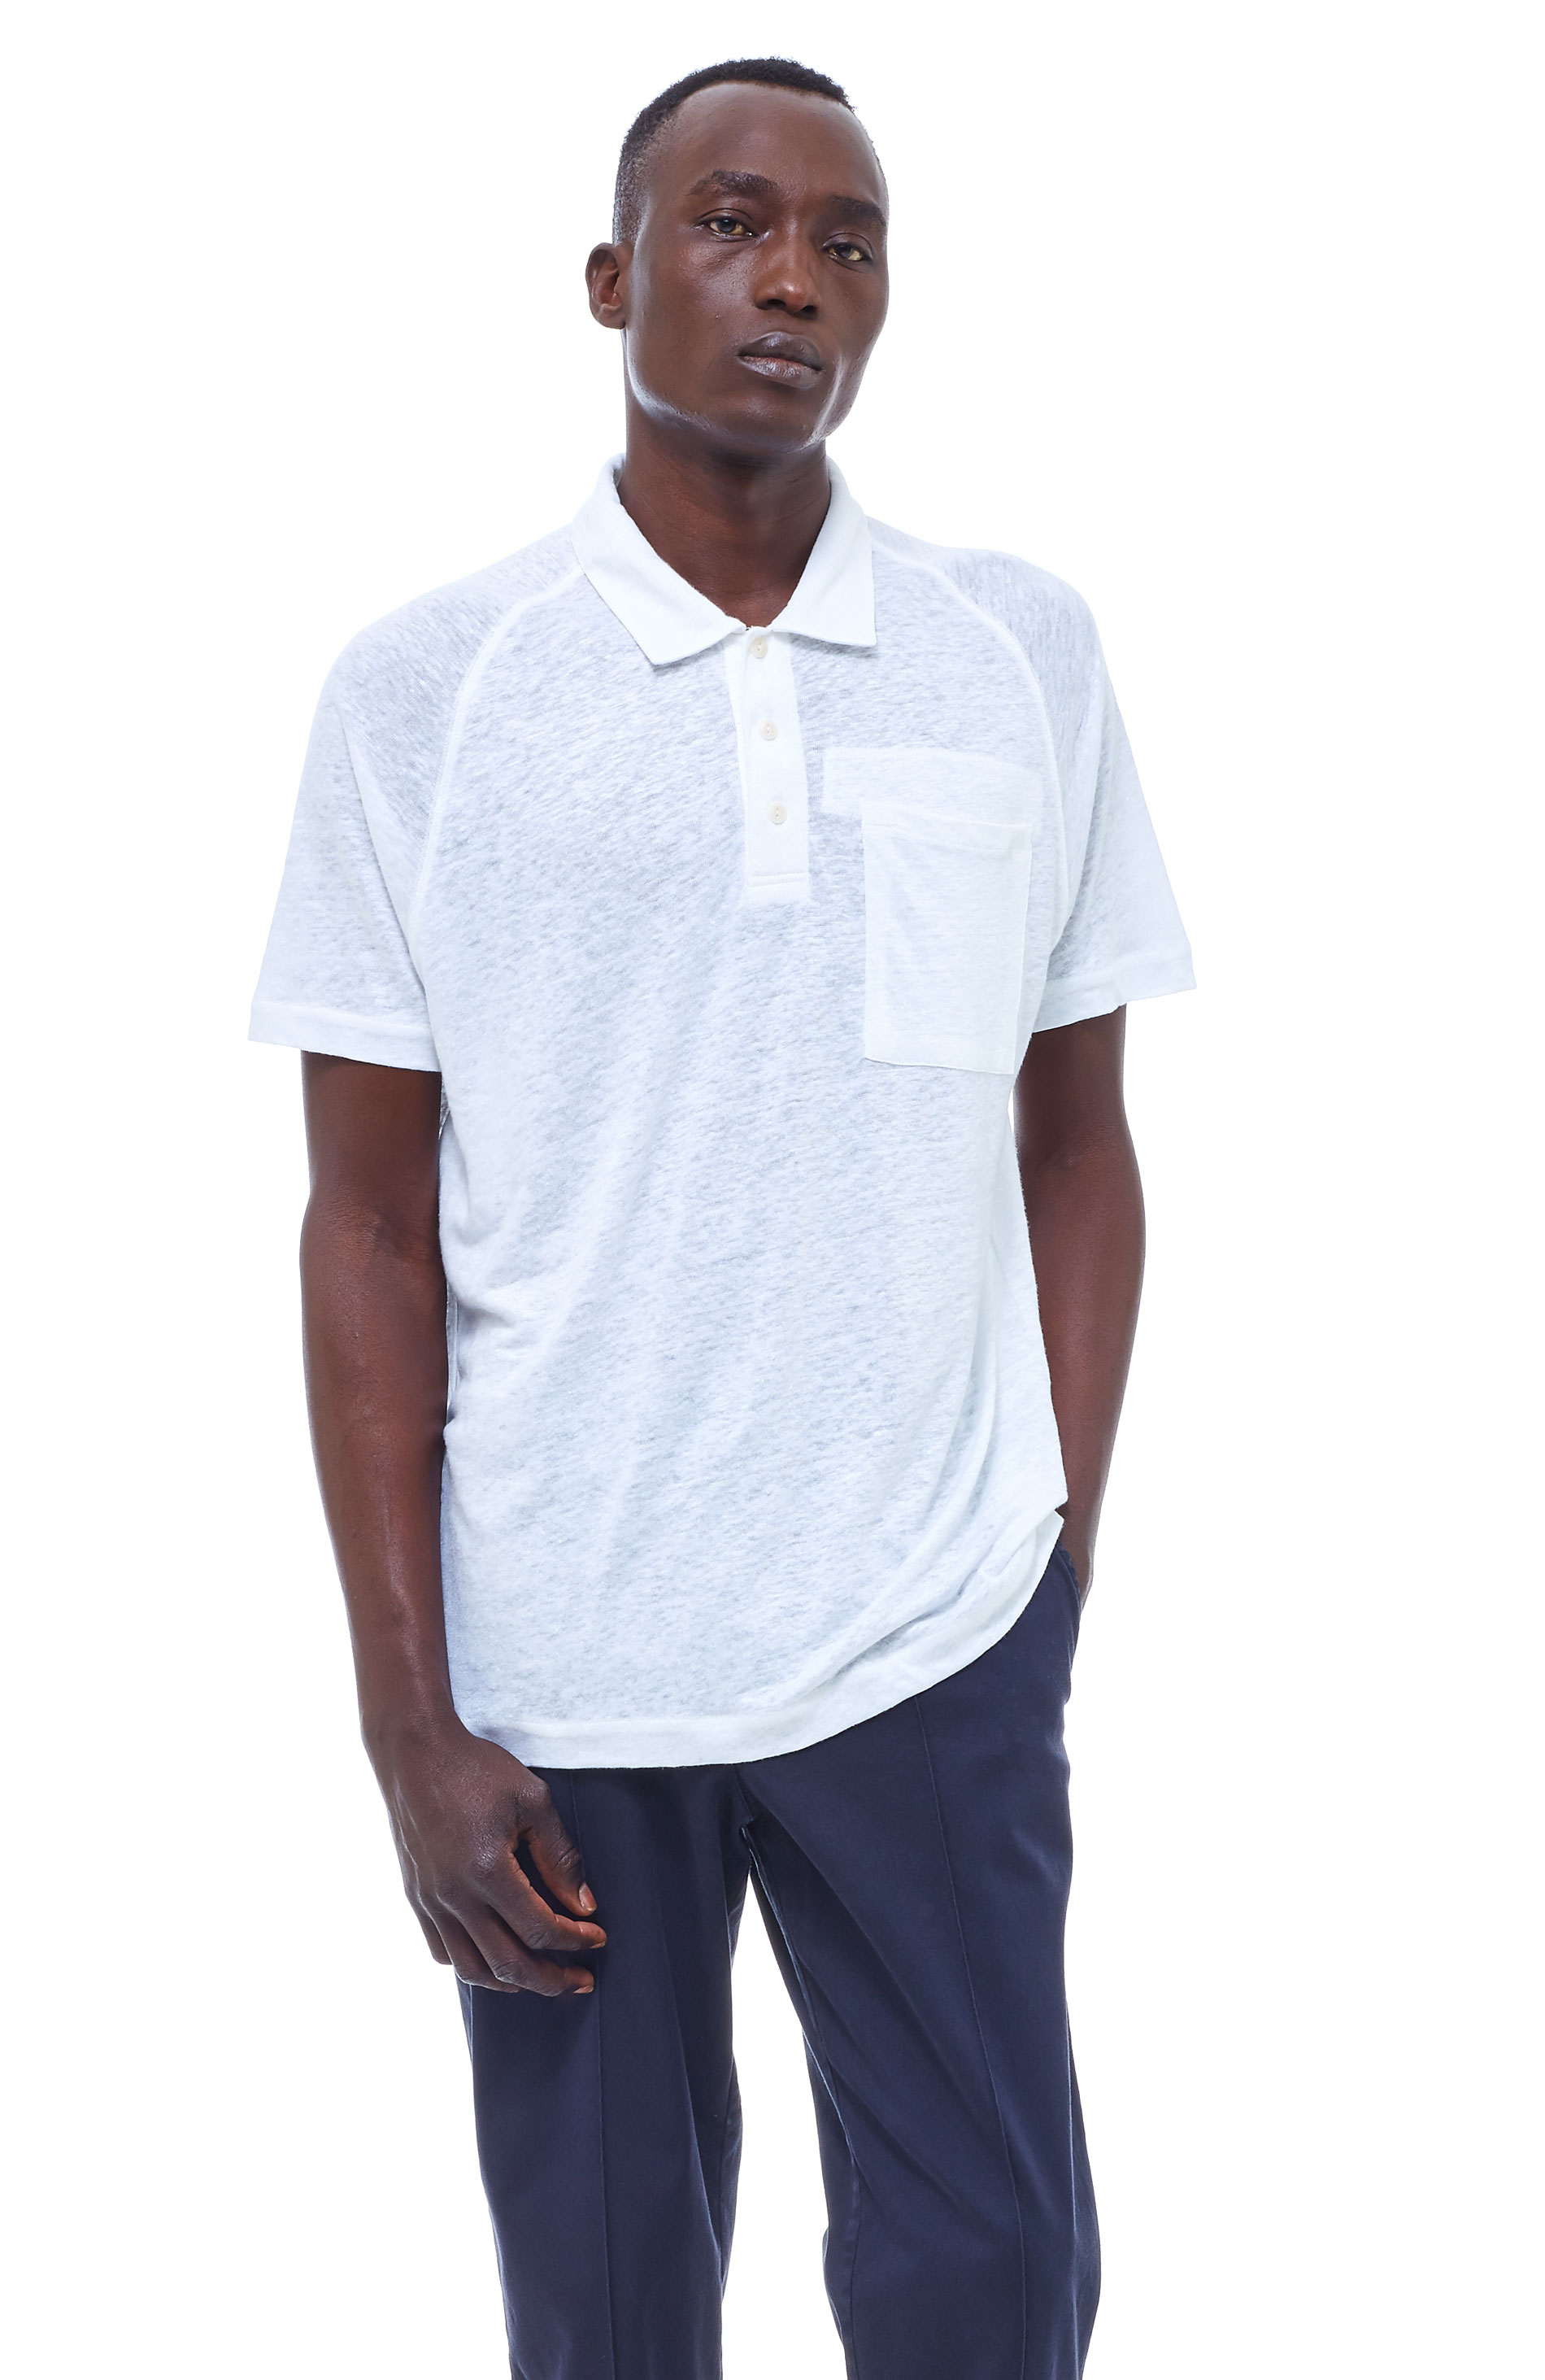 YMC Young Marble Giants Polo (white)